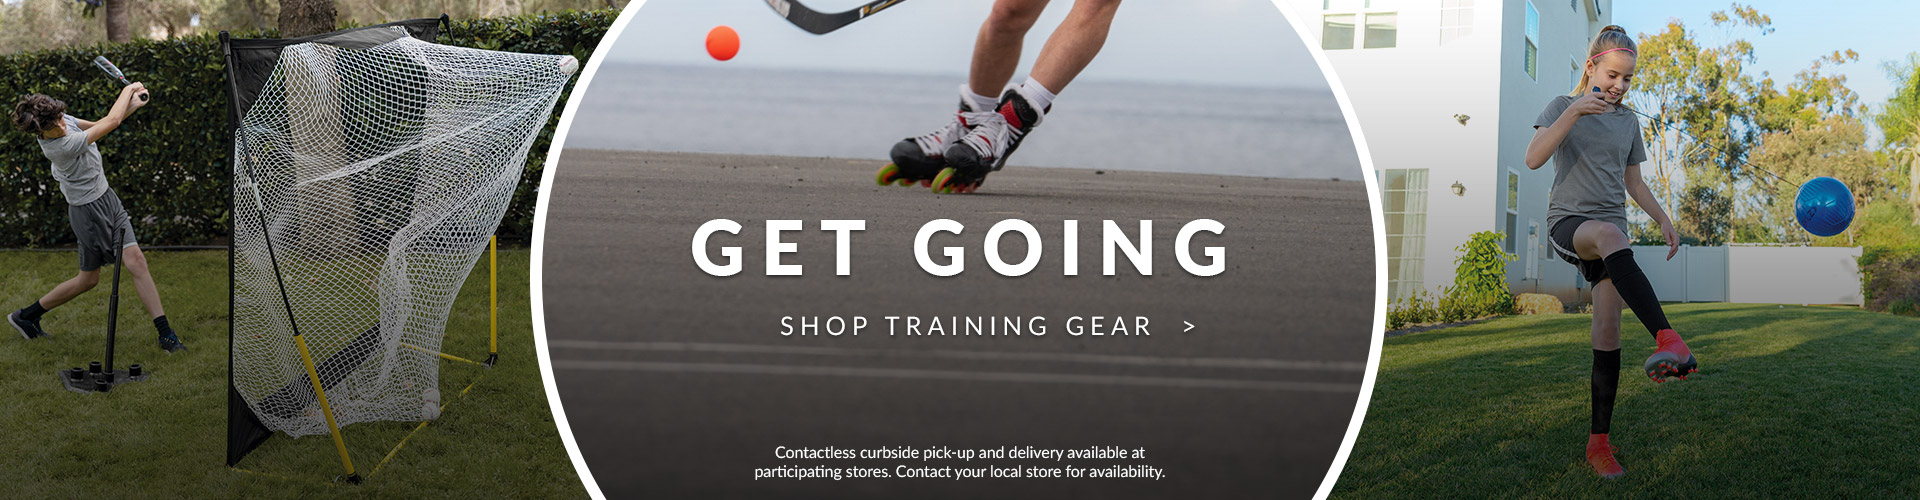 Shop Our Training & Fitness Equipment For Hockey, Baseball, Softball, Lacrosse, And Soccer This Spring At Your Local Source For Sports Store Near You.